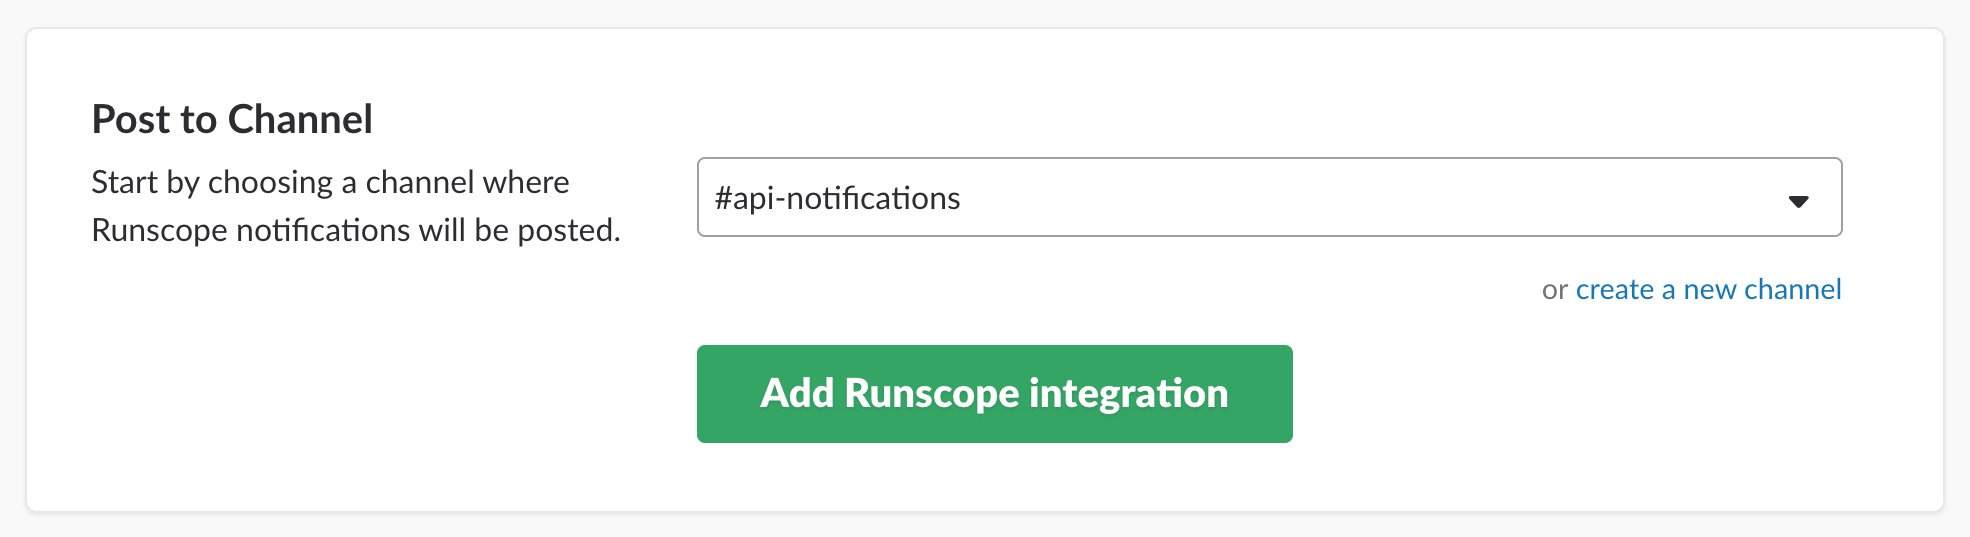 Slack App Directory website after clicking on Install on the Runscope integration page, showing a drop-down menu to select a channel.